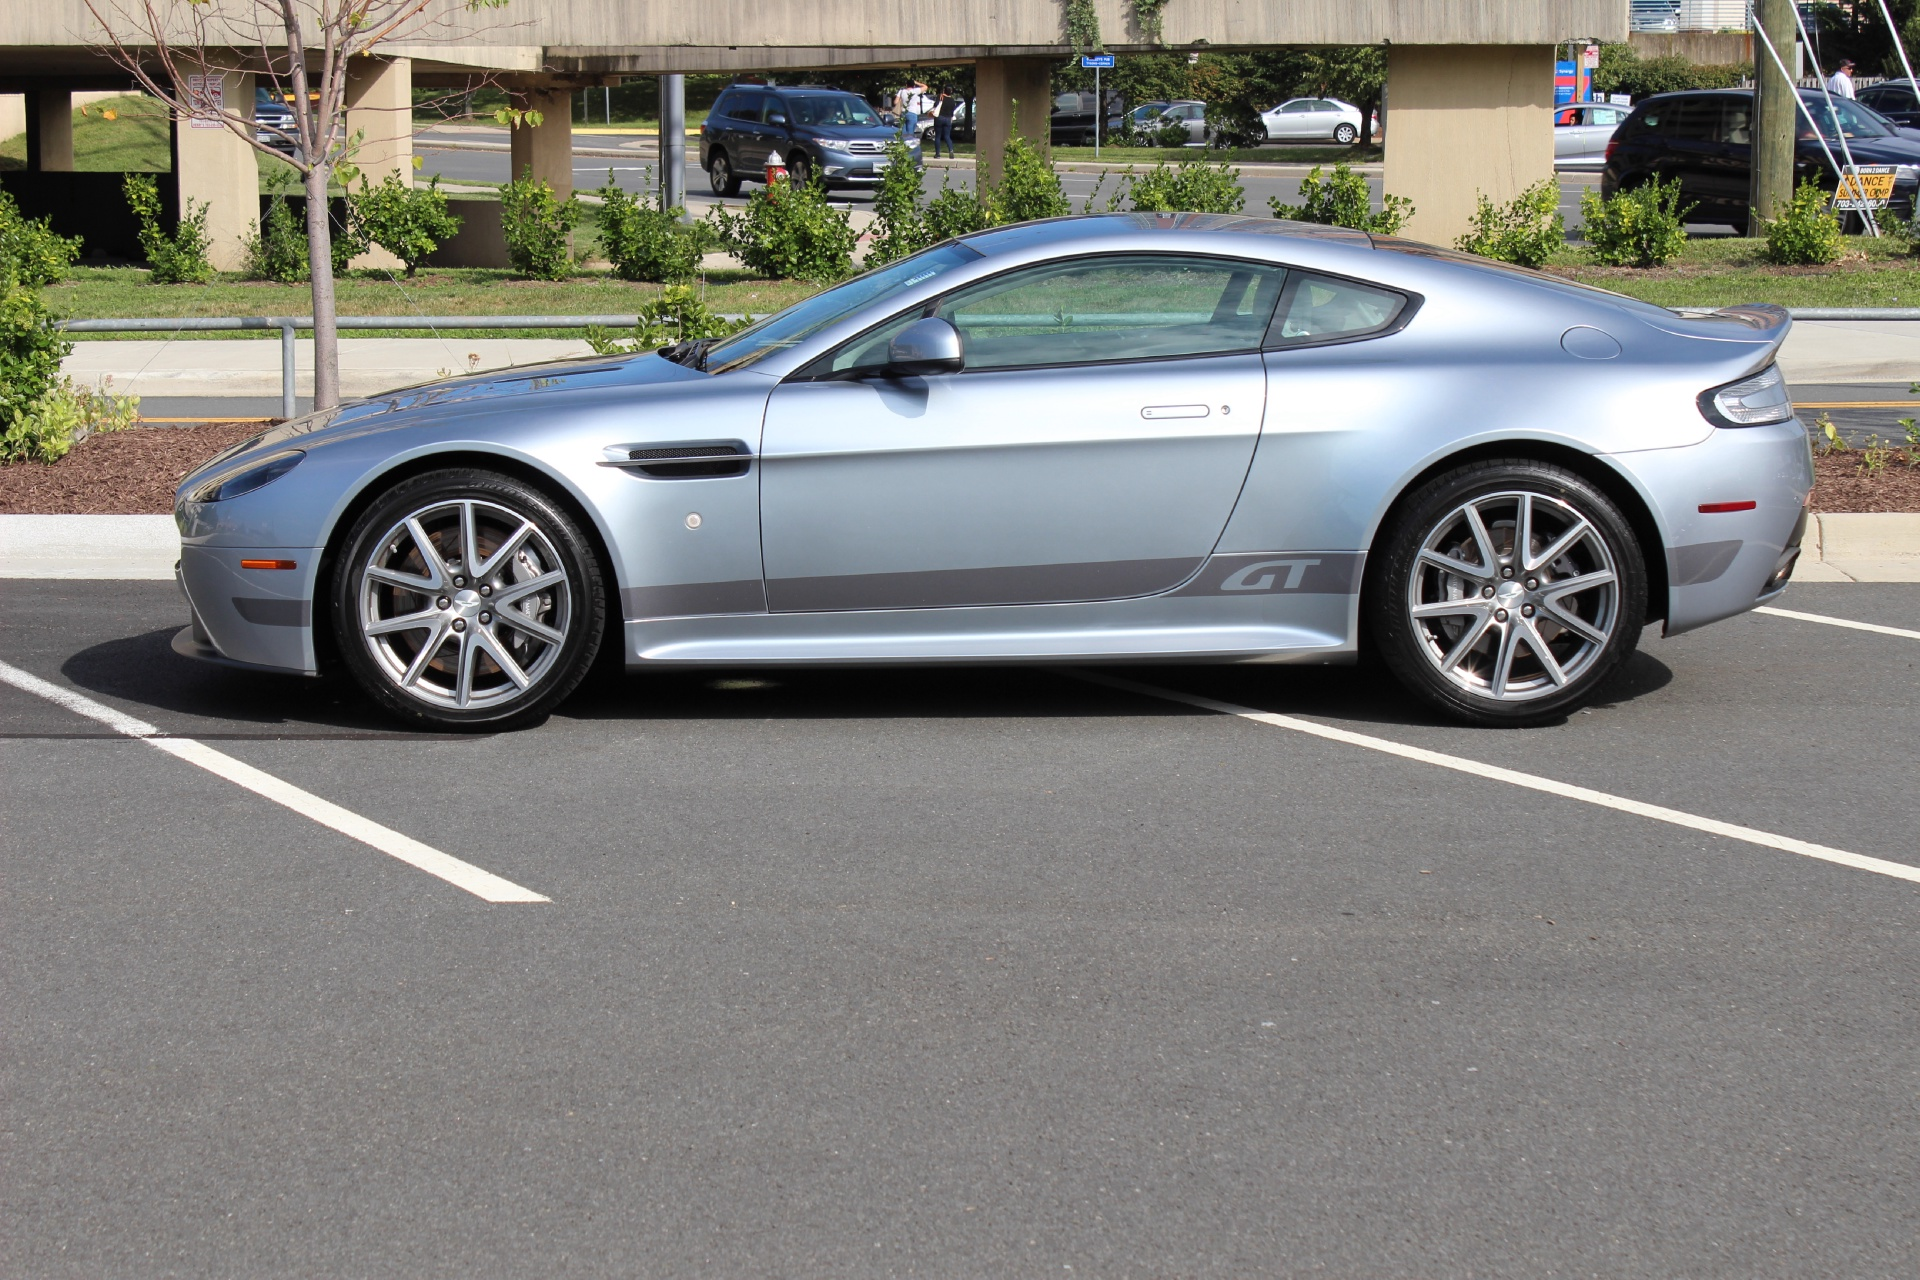 2015 Aston Martin V8 Vantage Gt Gt Stock 5c19634 For Sale Near